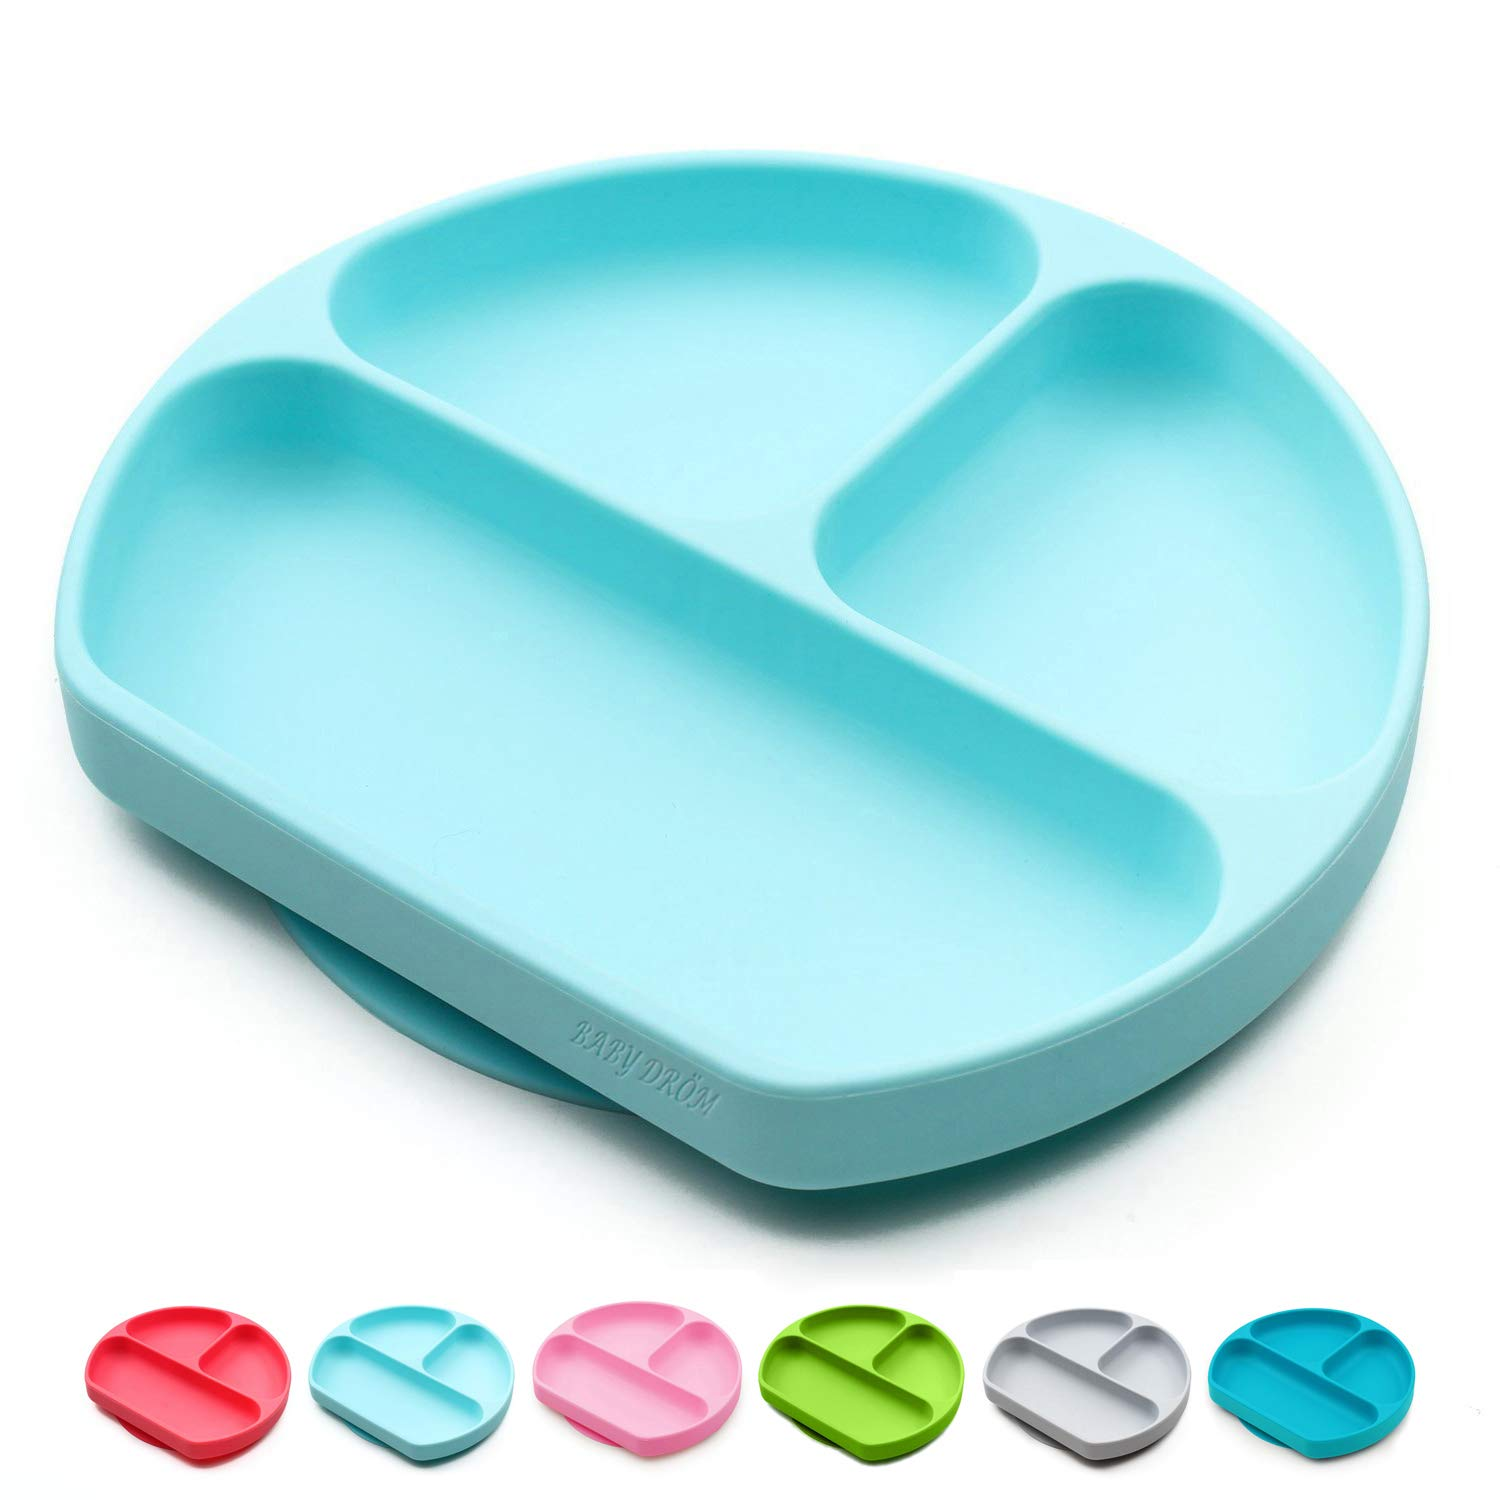 Baby Dröm Suction Plates for Babies, Toddlers, Silicone Placemats for Kids That Stick to High Chair Trays and Table, Baby Dishes - Kids Plates (Light Blue)